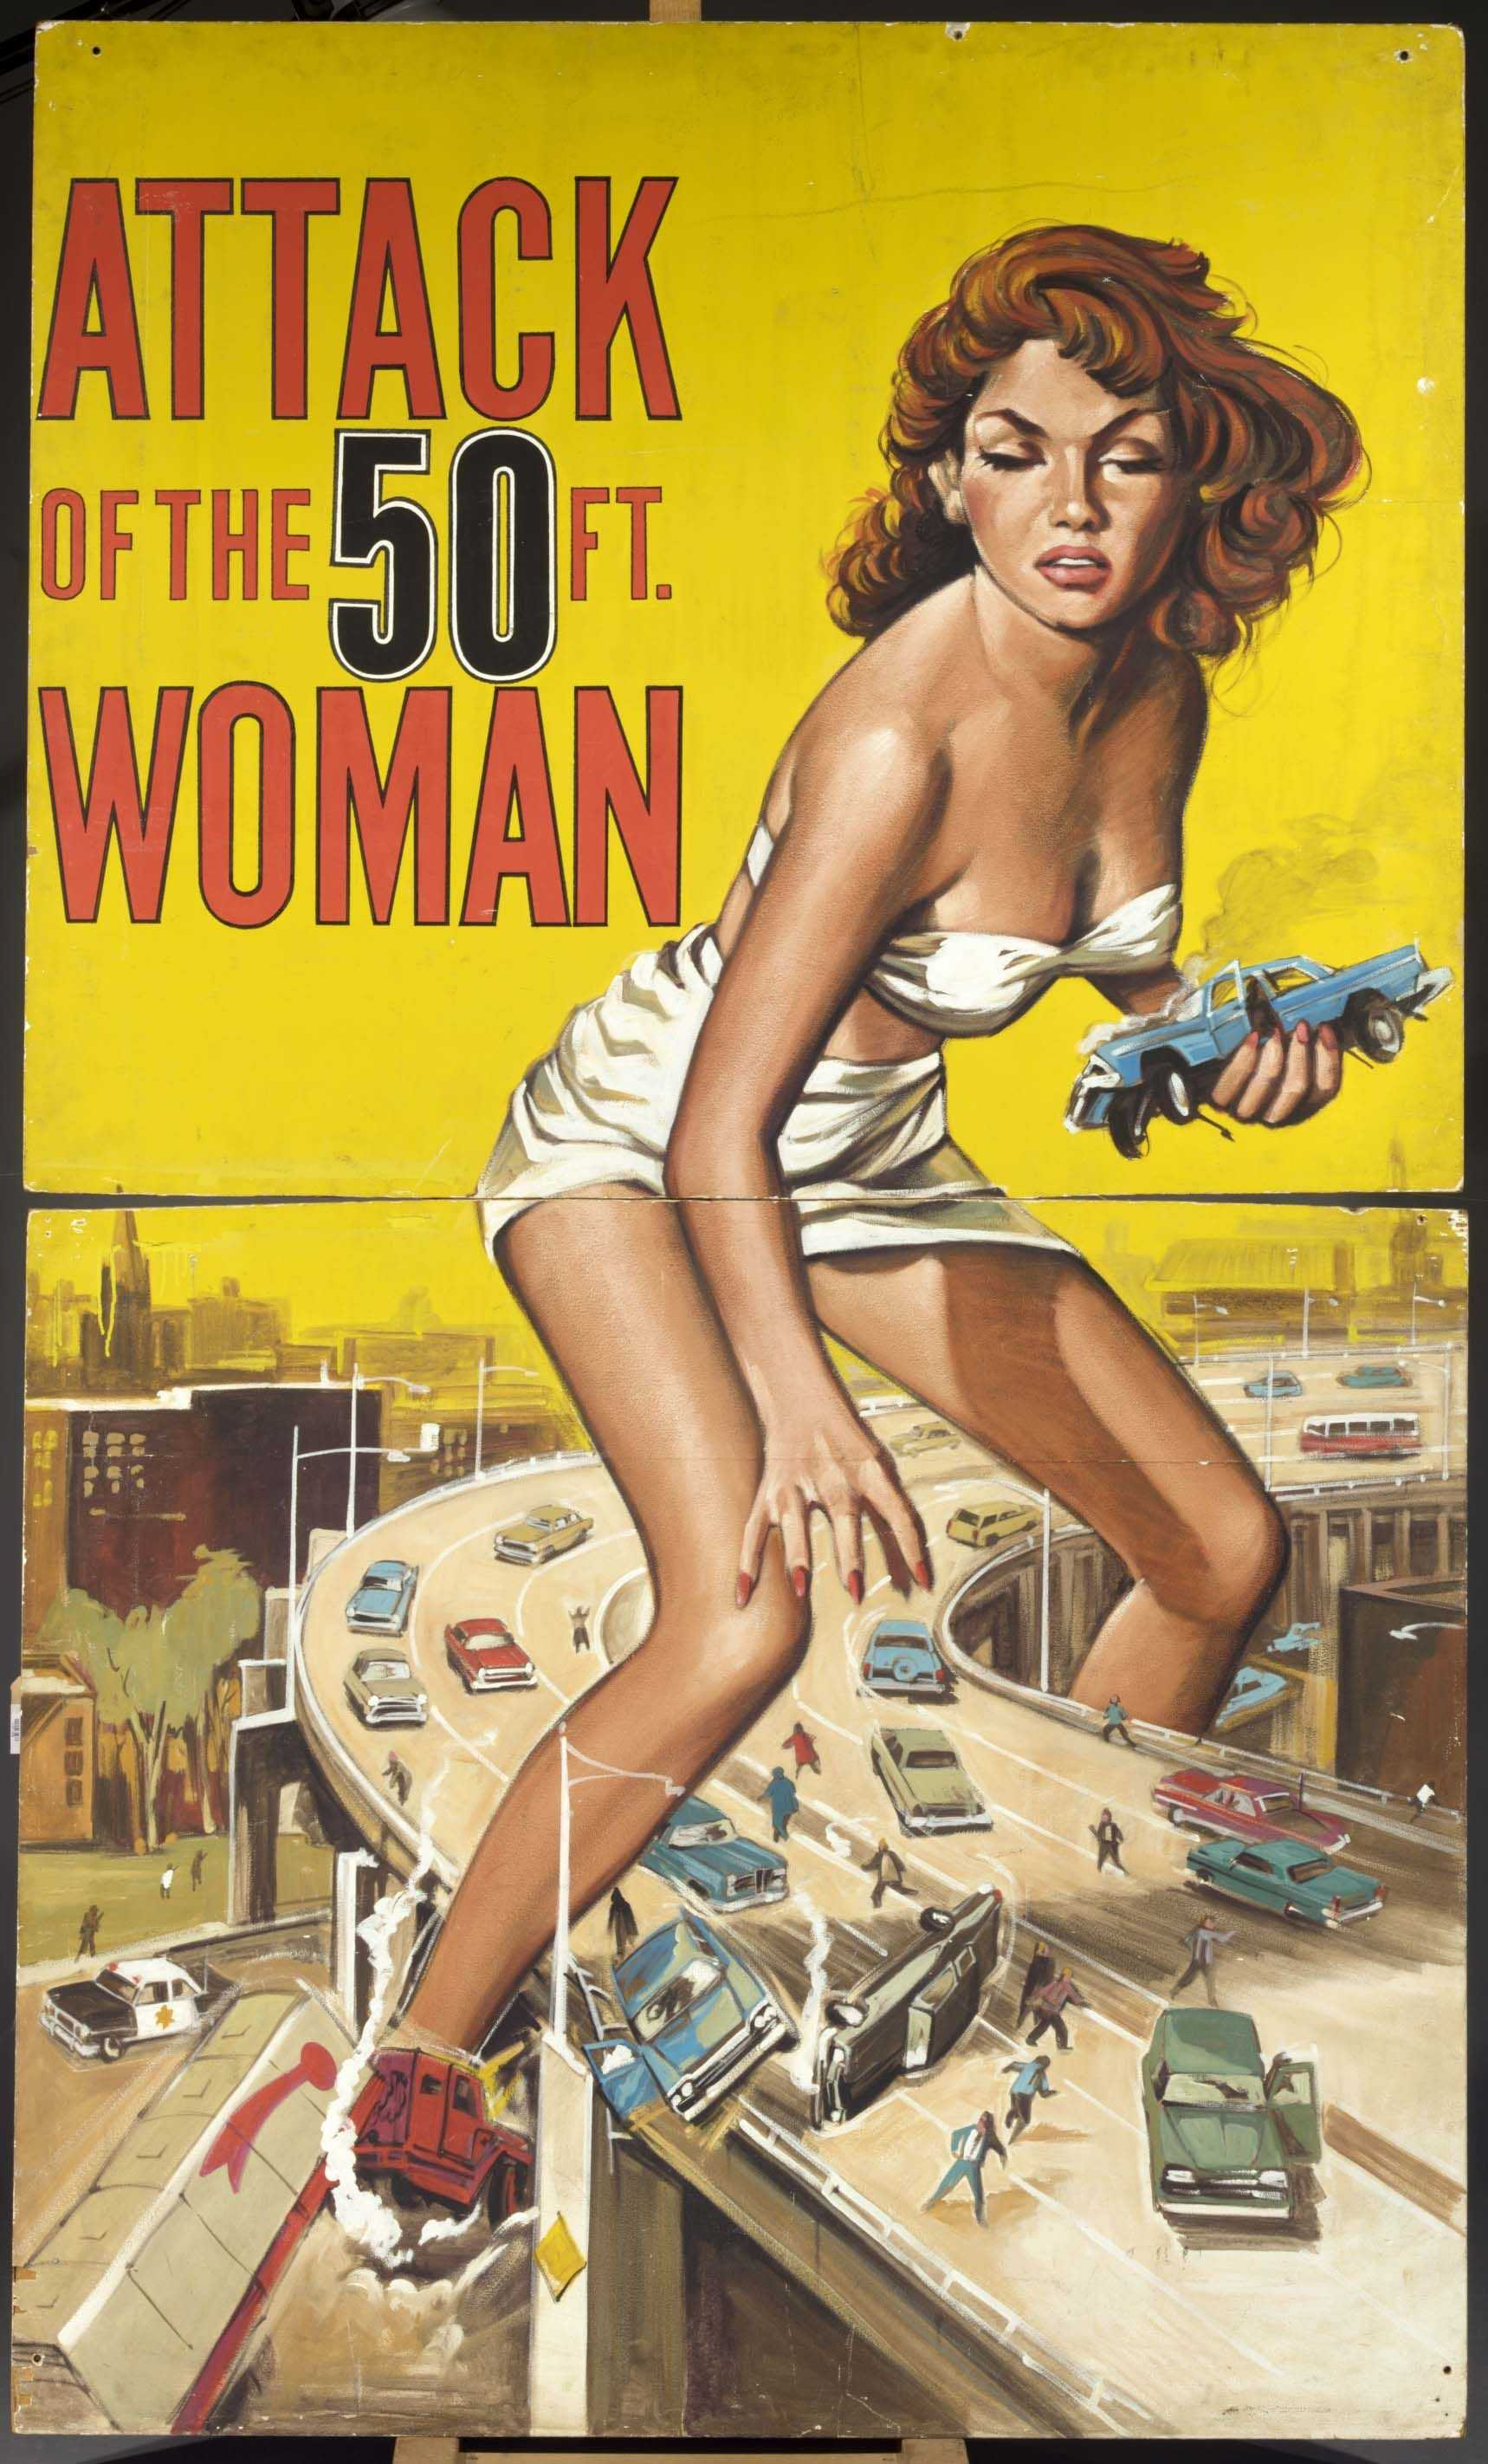 Attack of the 50 Foot Woman Attack of the 50ft woman cult film poster 1958 Planetarium